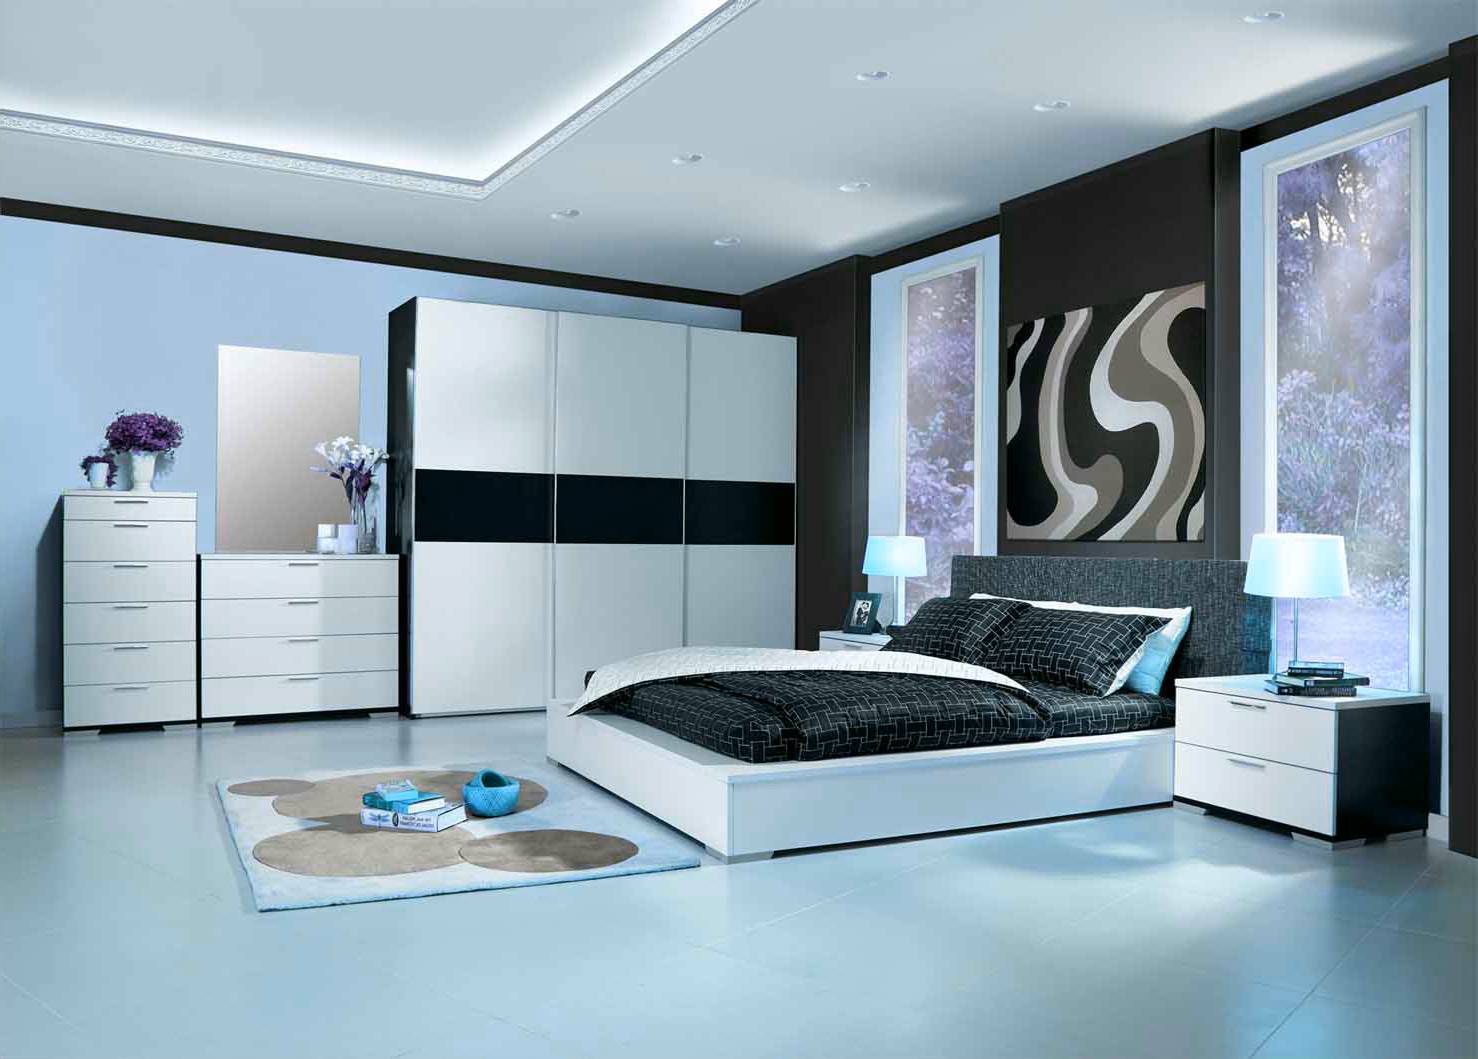 Home Design Bedroom 31 Awesome Interior Design Inspiration